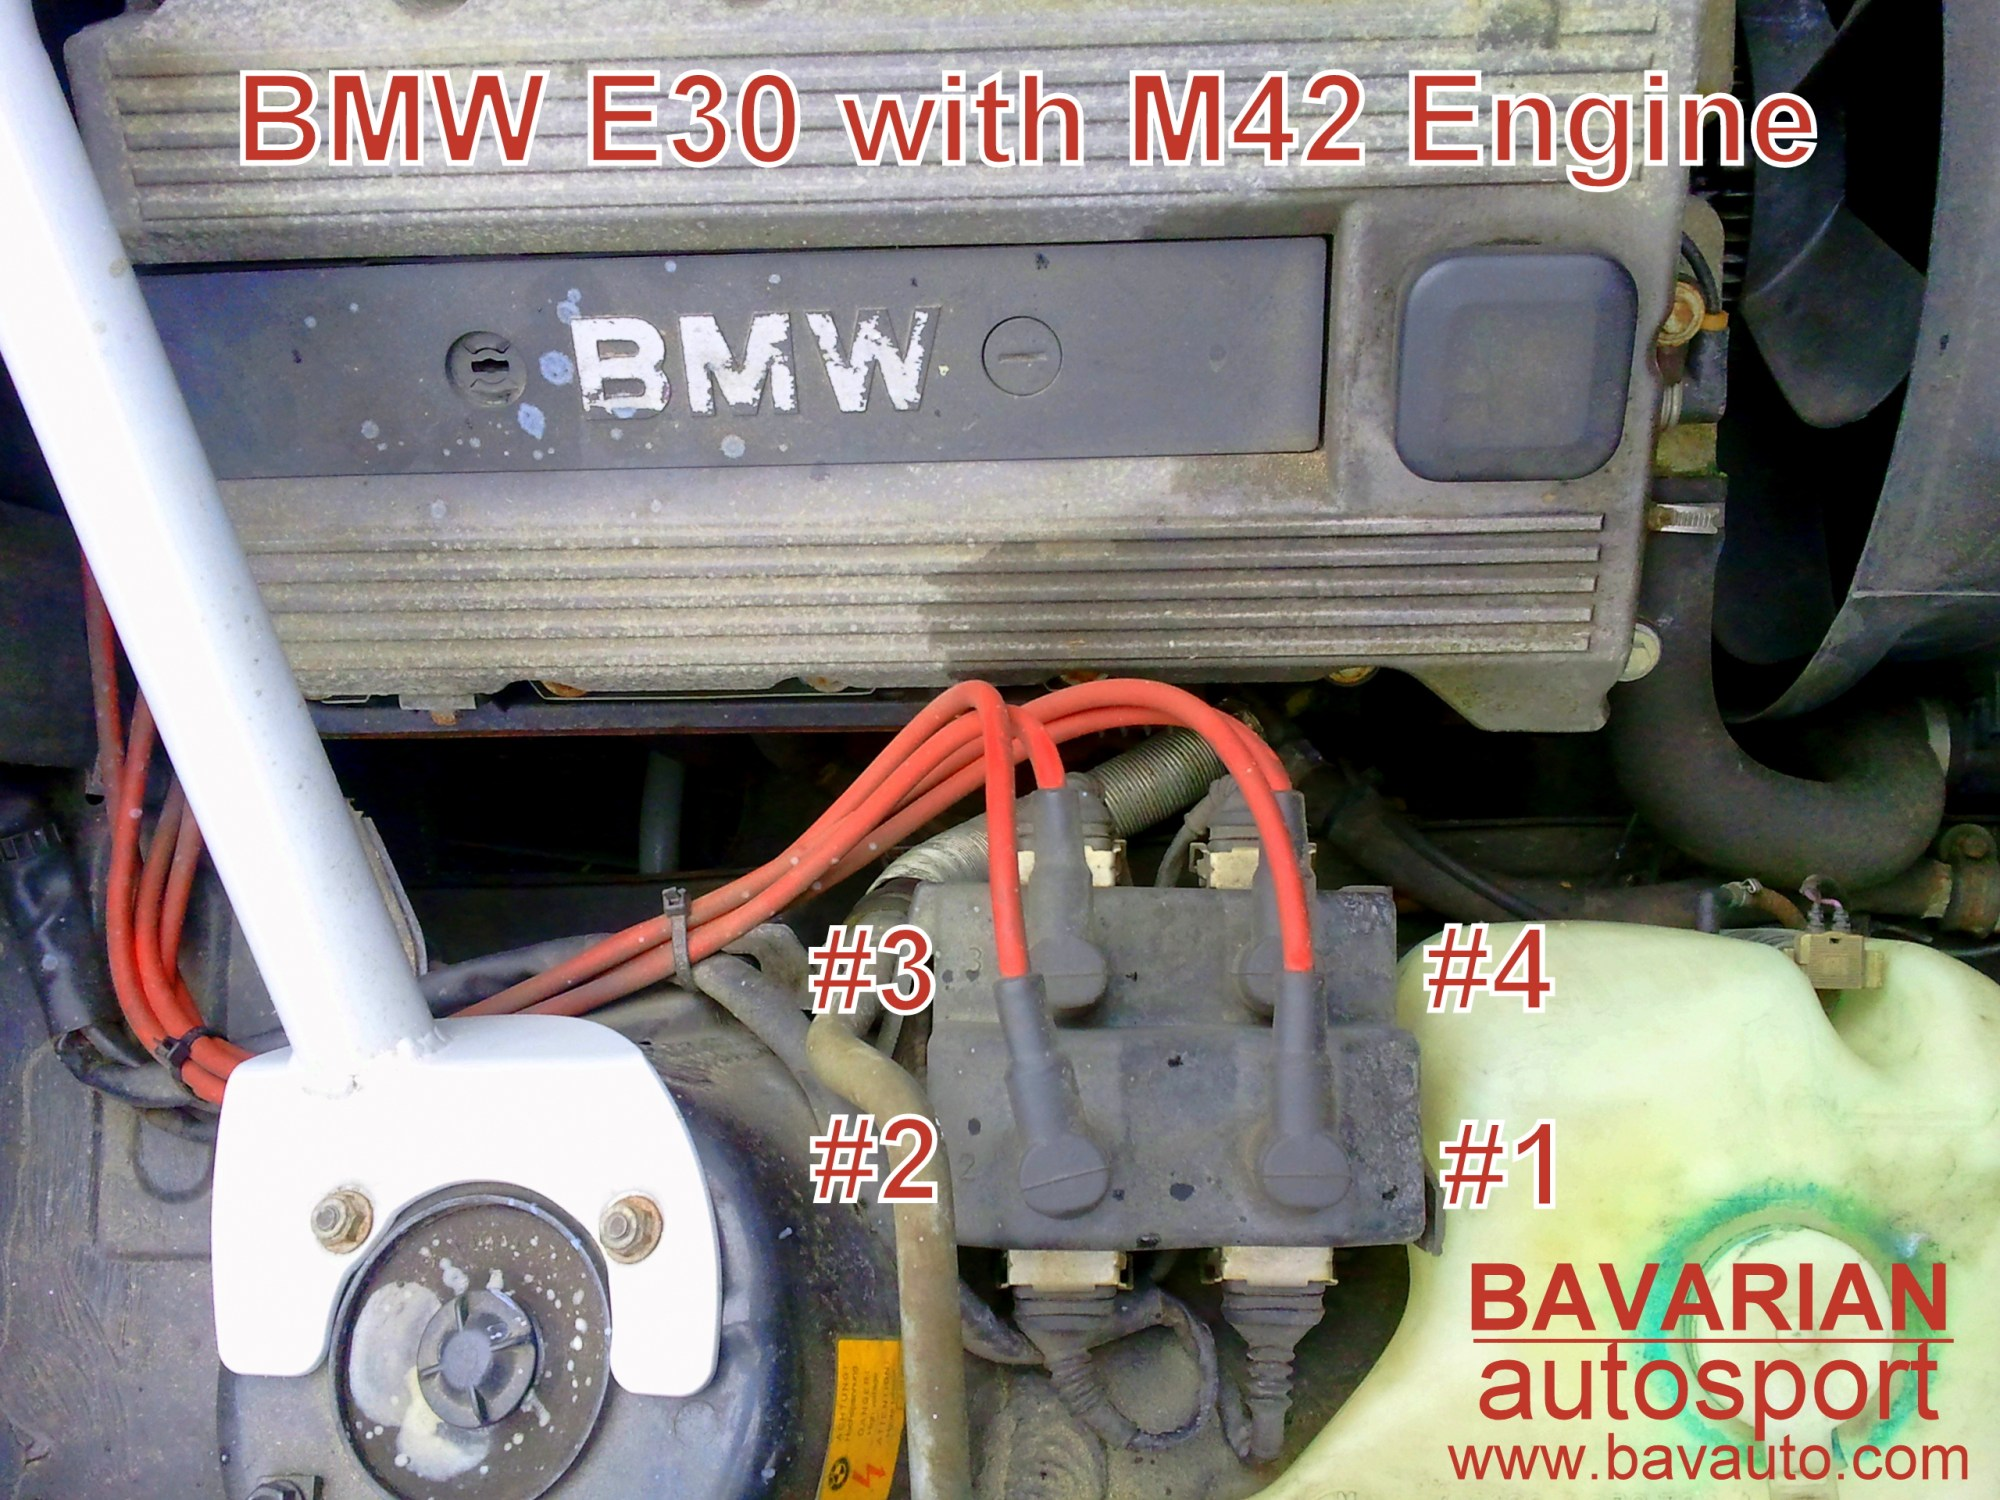 hight resolution of bmw 318i m42 coil pack spark plug wire and firing order 318is coil on plug tester